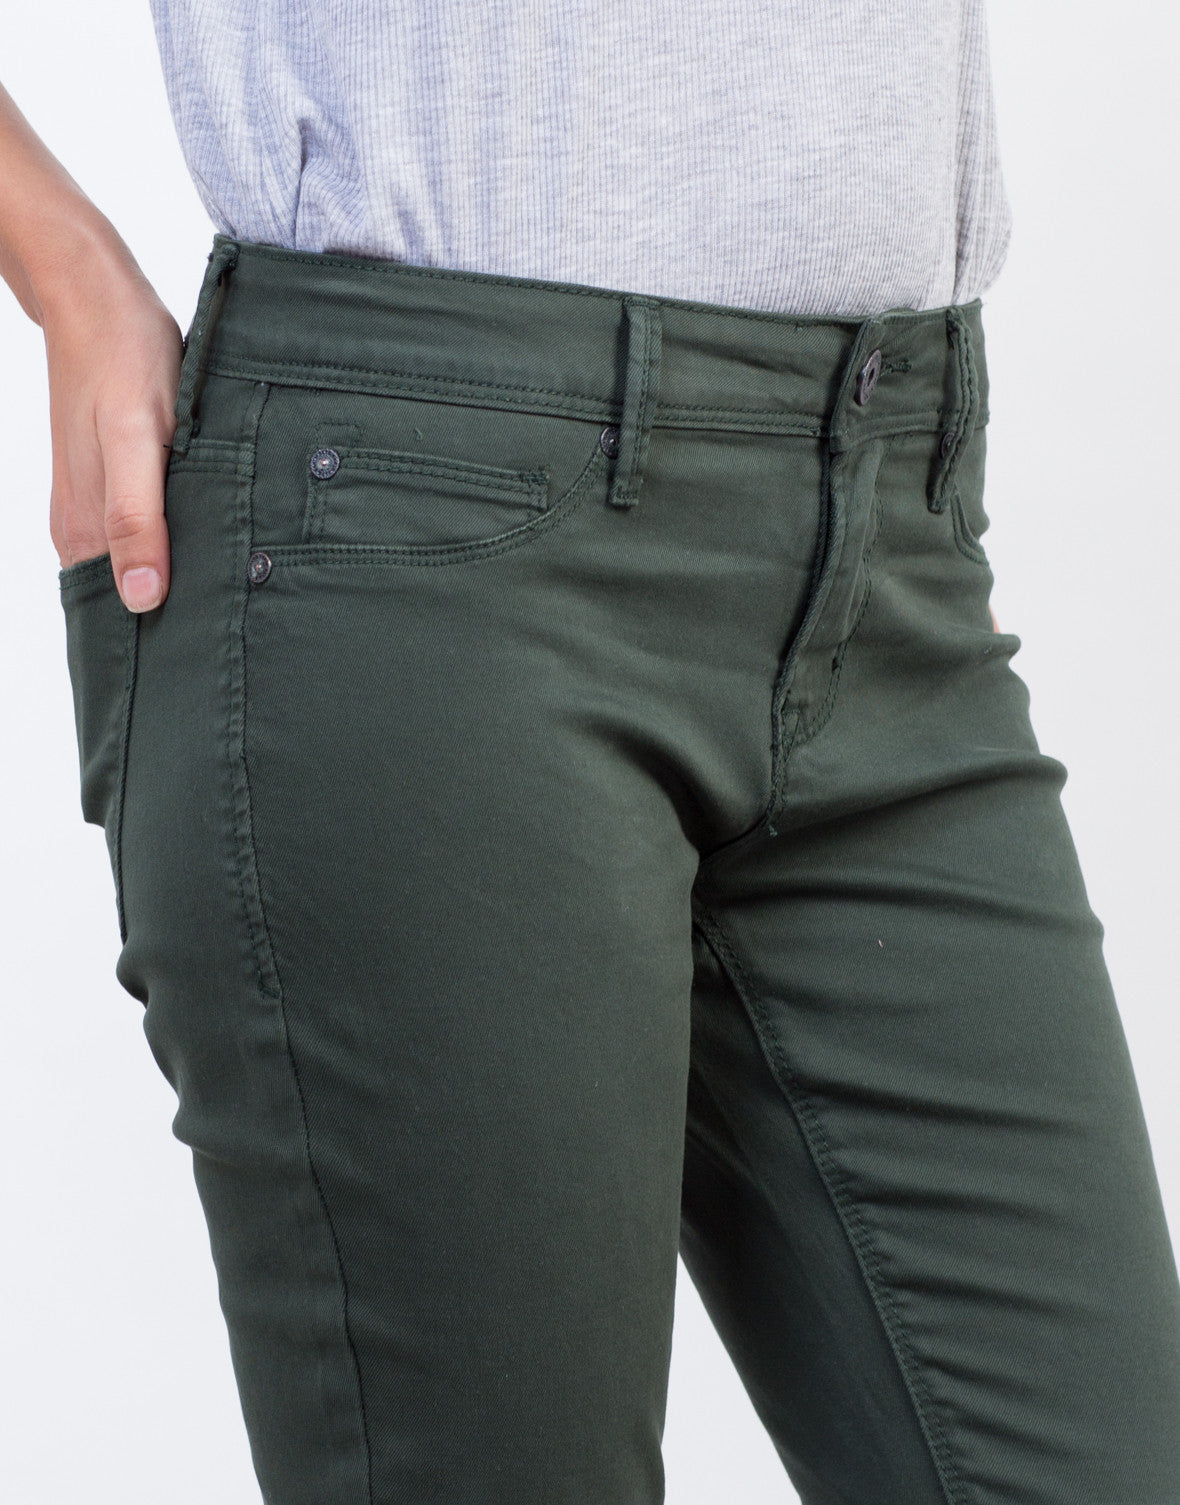 Detail of Solid Color Skinny Jeans